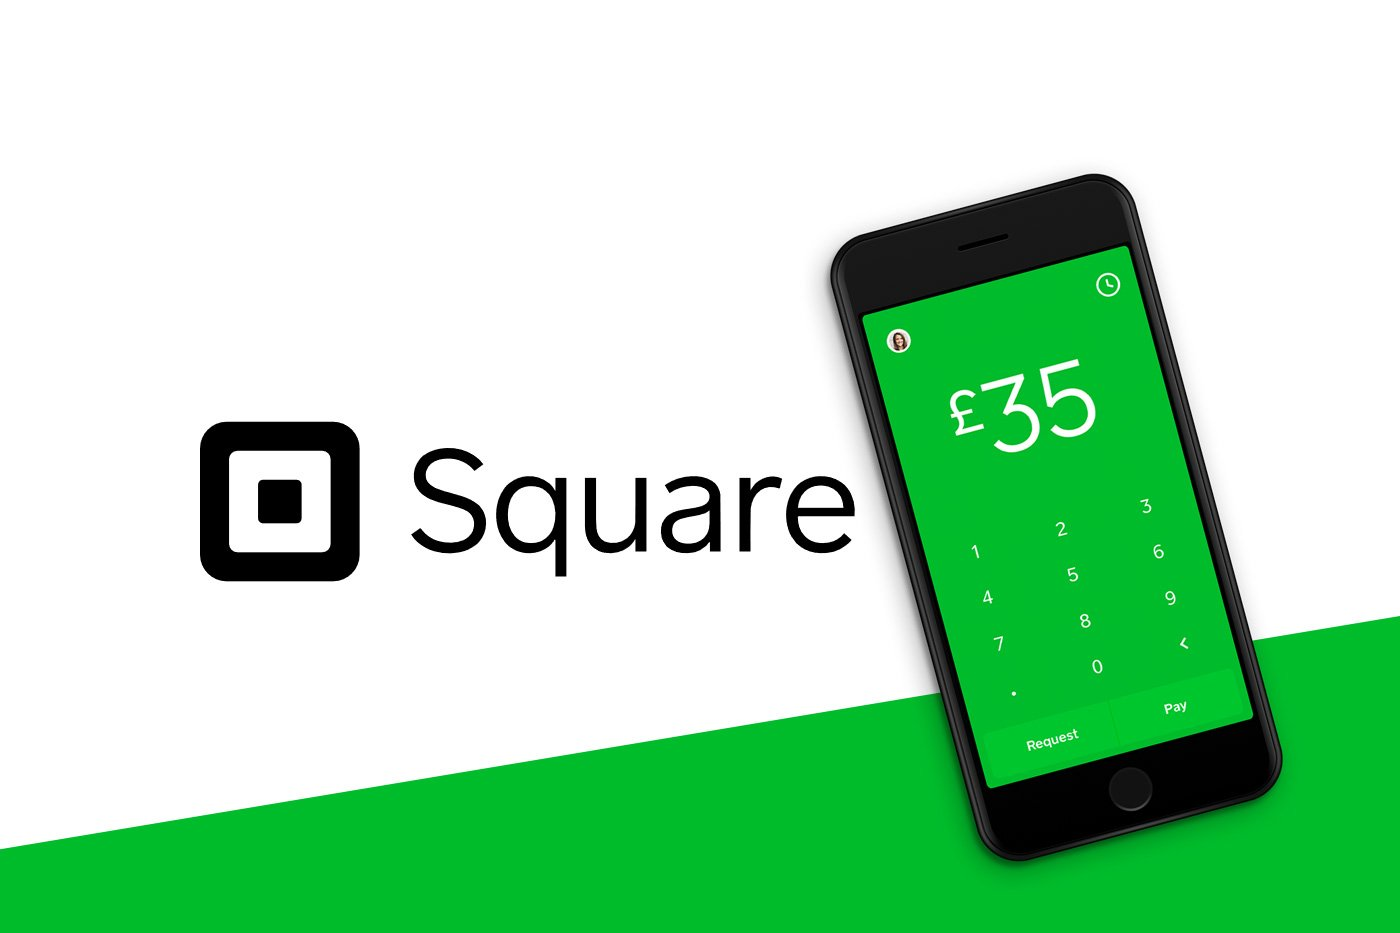 Square Cash App: Bitcoin Revenue Hits $65 Million in Q1 2019